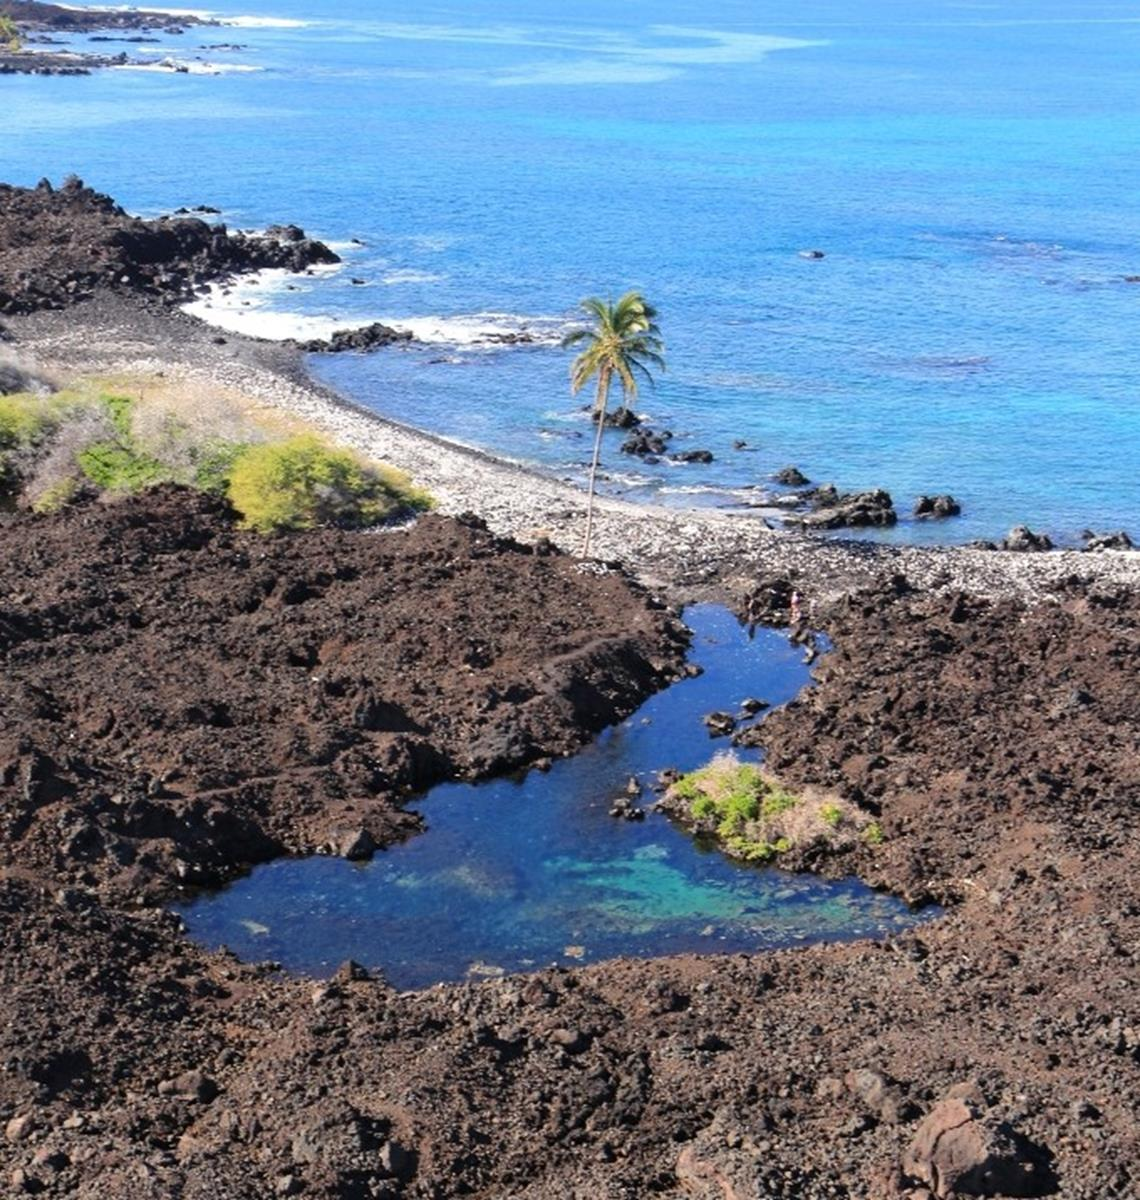 Beach Island: A+ Experiences Await For A Student Trip To Hawaii